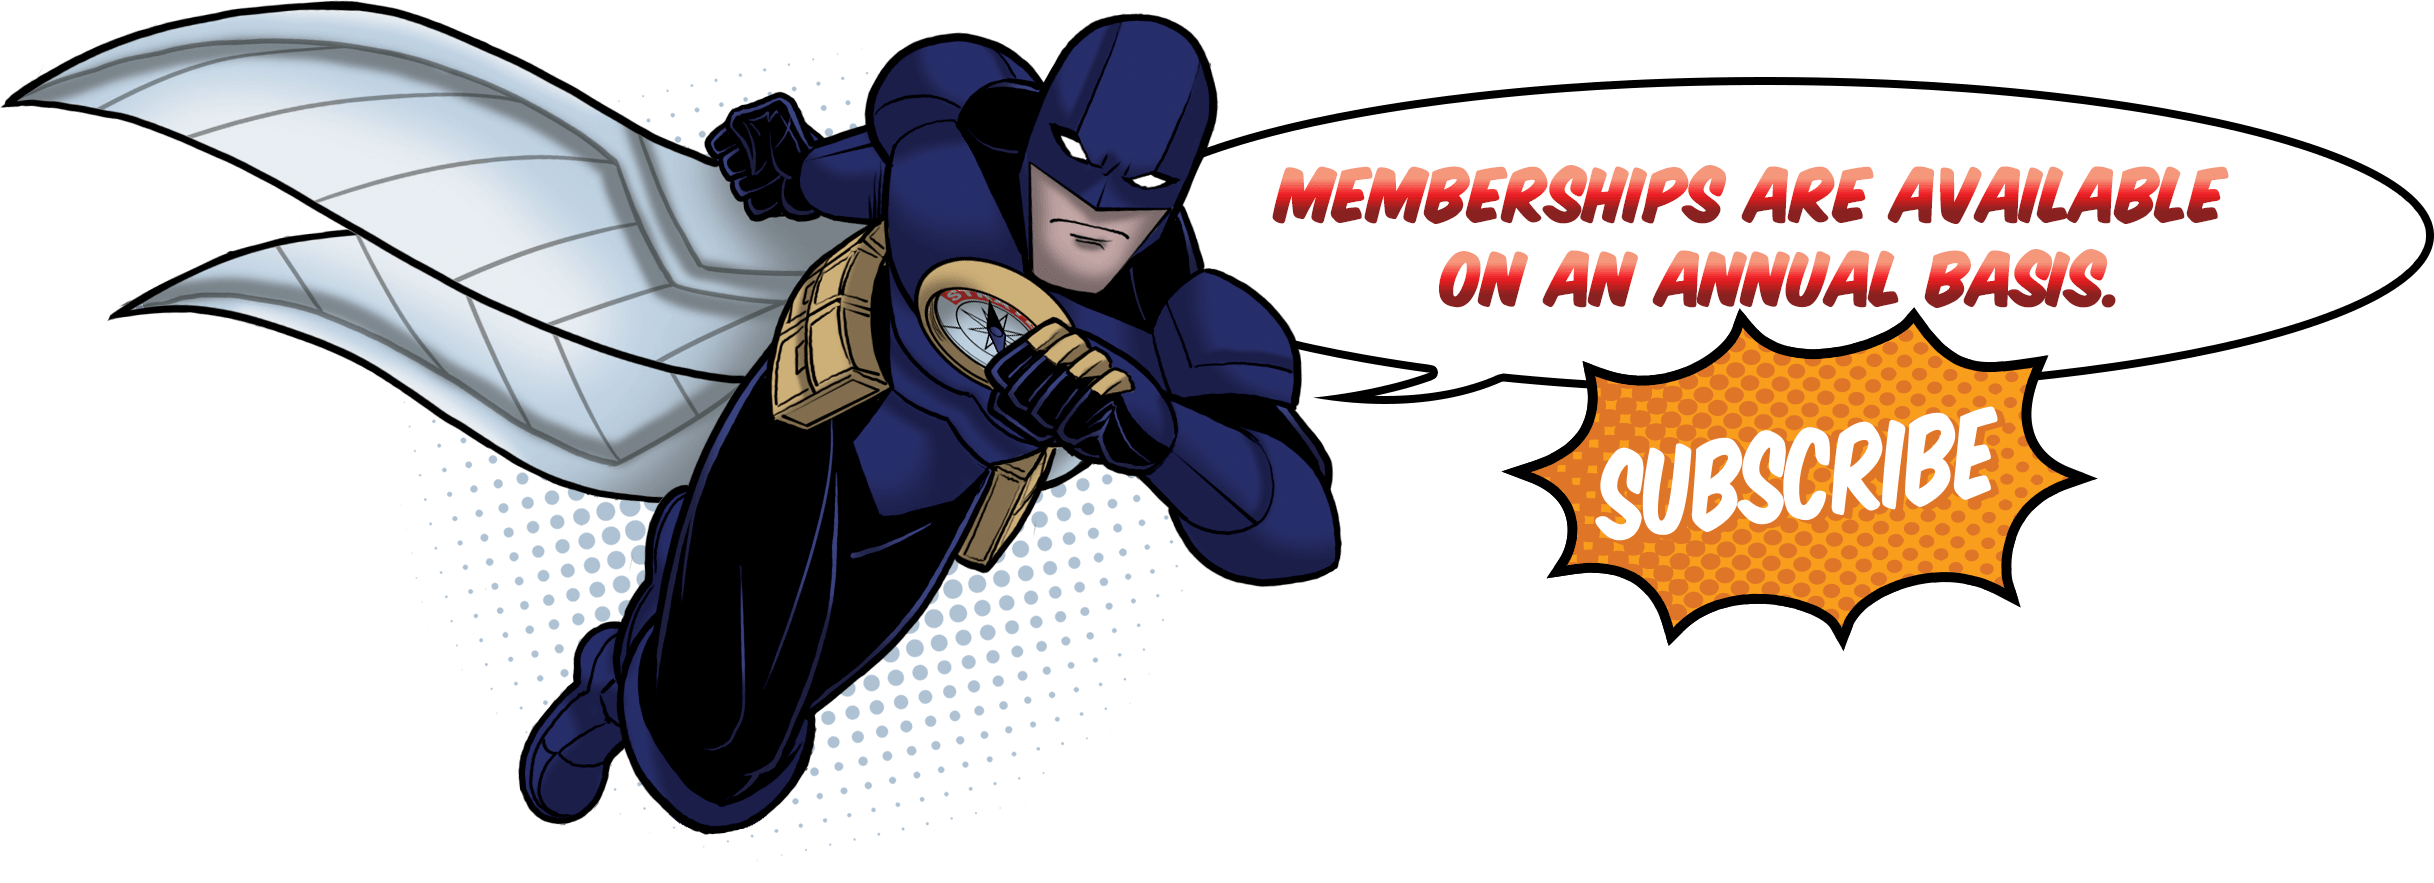 Memberships are available on an annual basis.